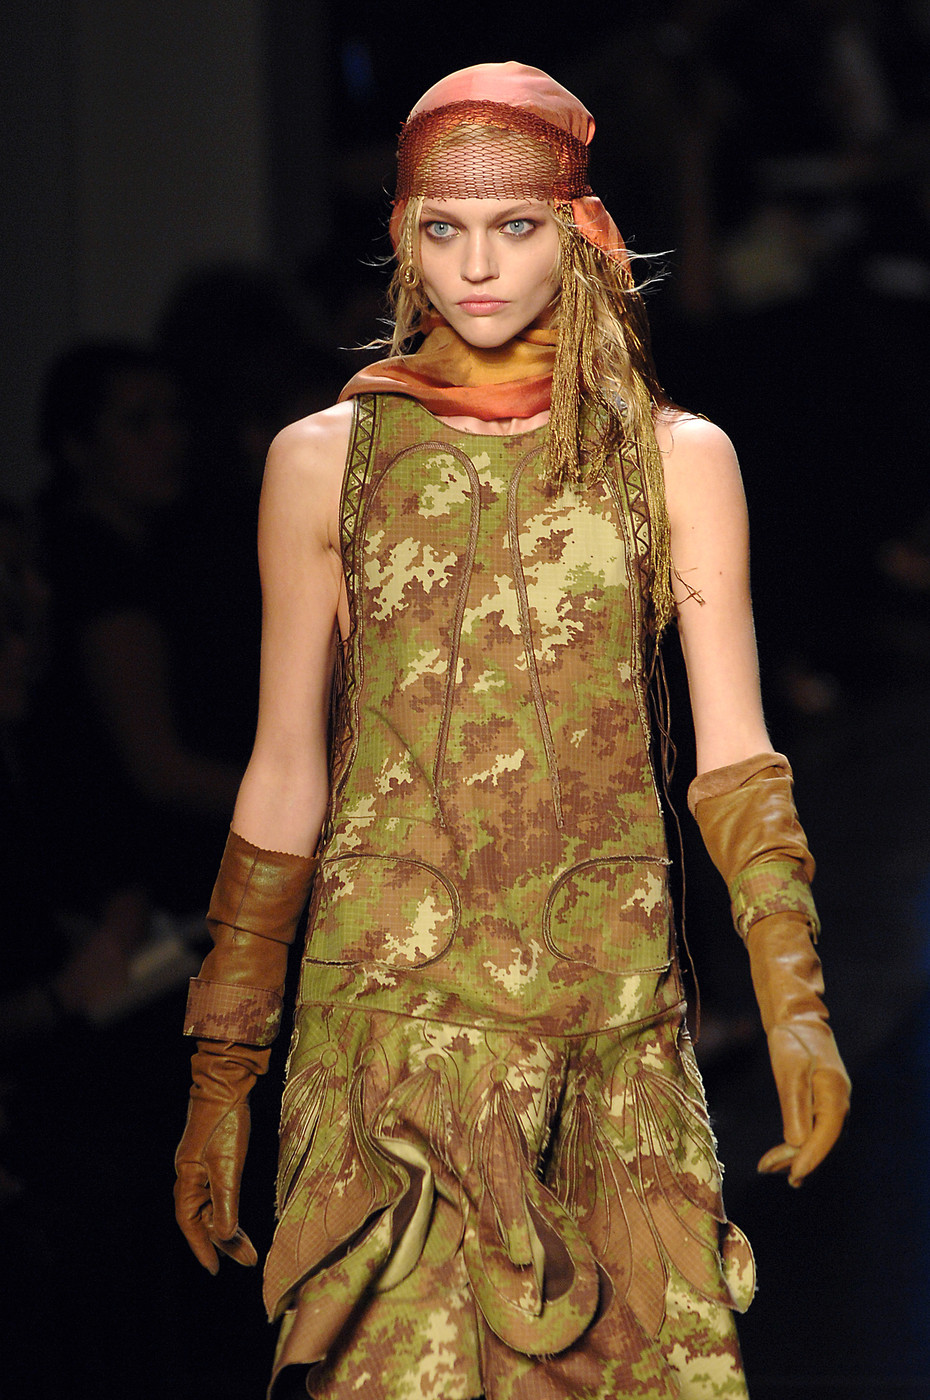 Jean paul gaultier at paris fashion week spring 2008 - Jean paul gaultier puissance 2 ...